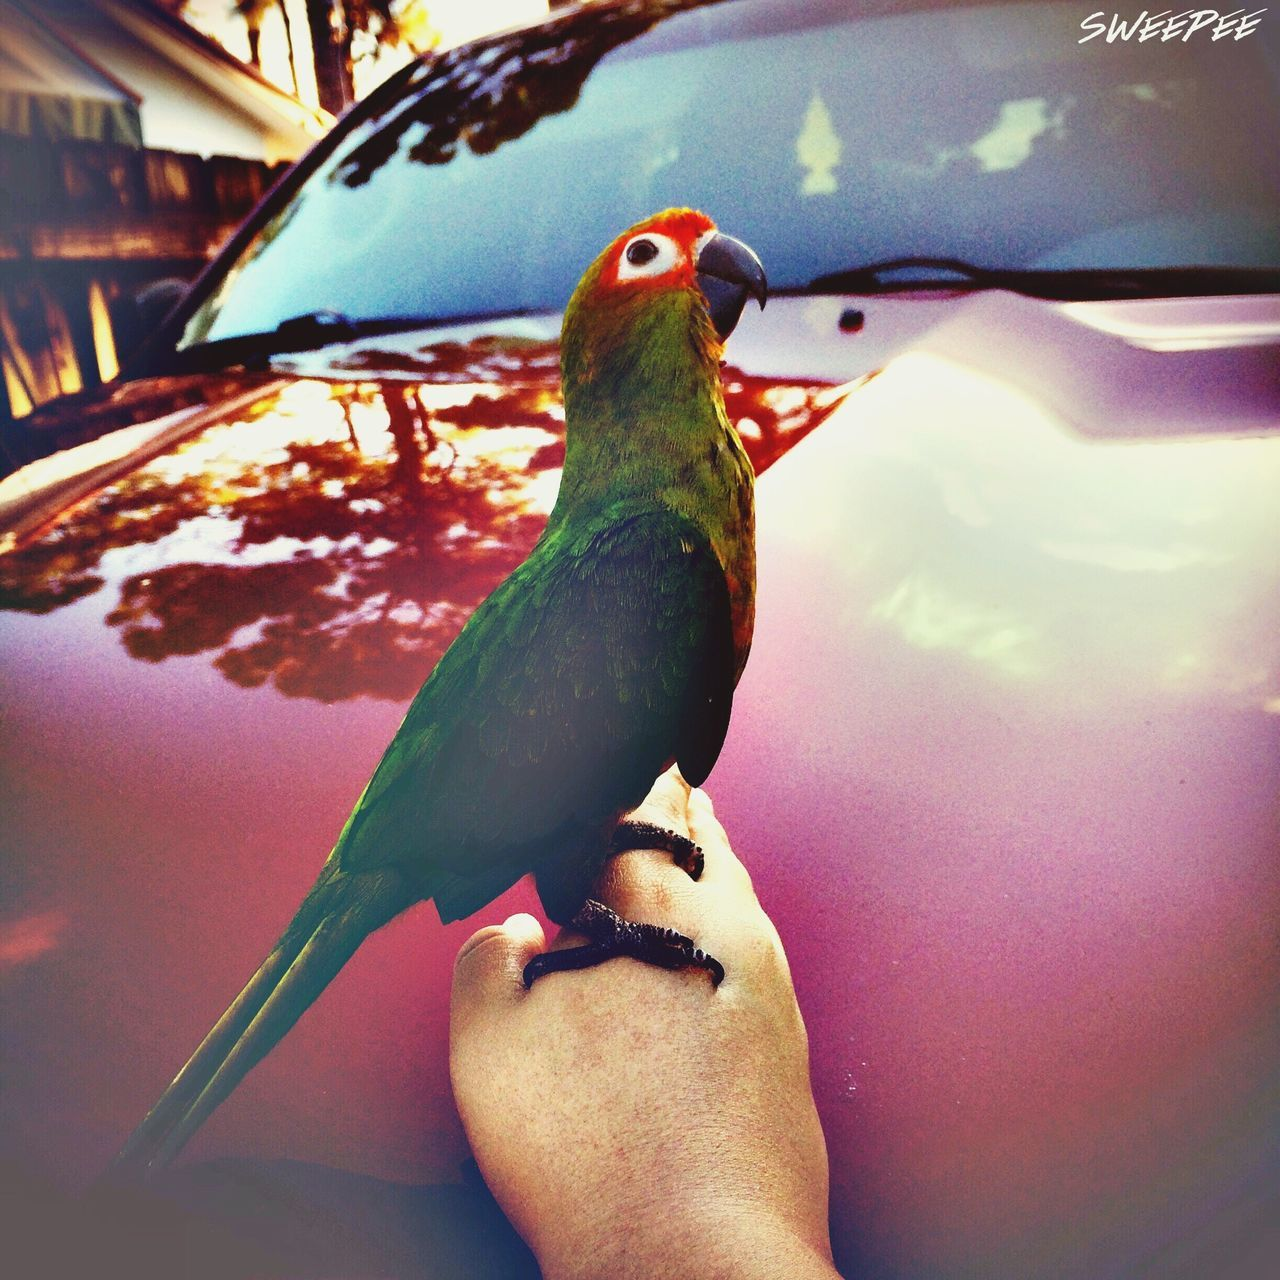 animal themes, bird, animals in the wild, human hand, one animal, perching, human body part, animal wildlife, outdoors, day, nature, close-up, one person